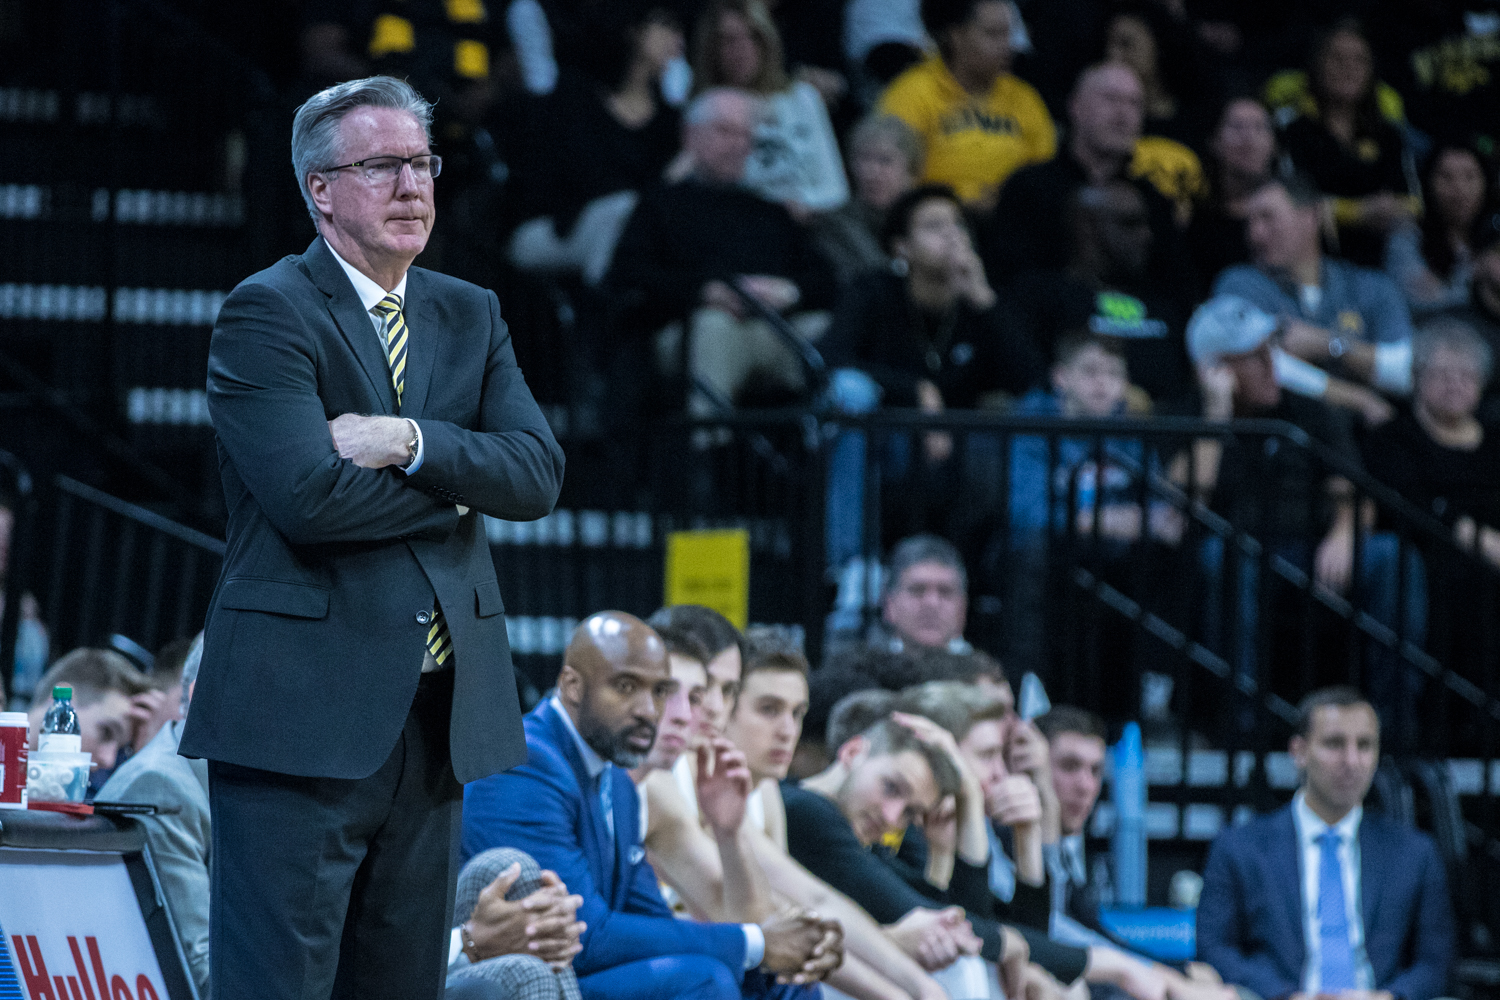 Iowa+head+coach+Fran+McCaffery+watches+his+team+during+a+men%27s+basketball+matchup+between+Ohio+State+and+Iowa+at+Carver-Hawkeye+Arena+on+Saturday%2C+January+12%2C+2019.+The+Hawkeyes+defeated+the+Buckeyes%2C+72-62.